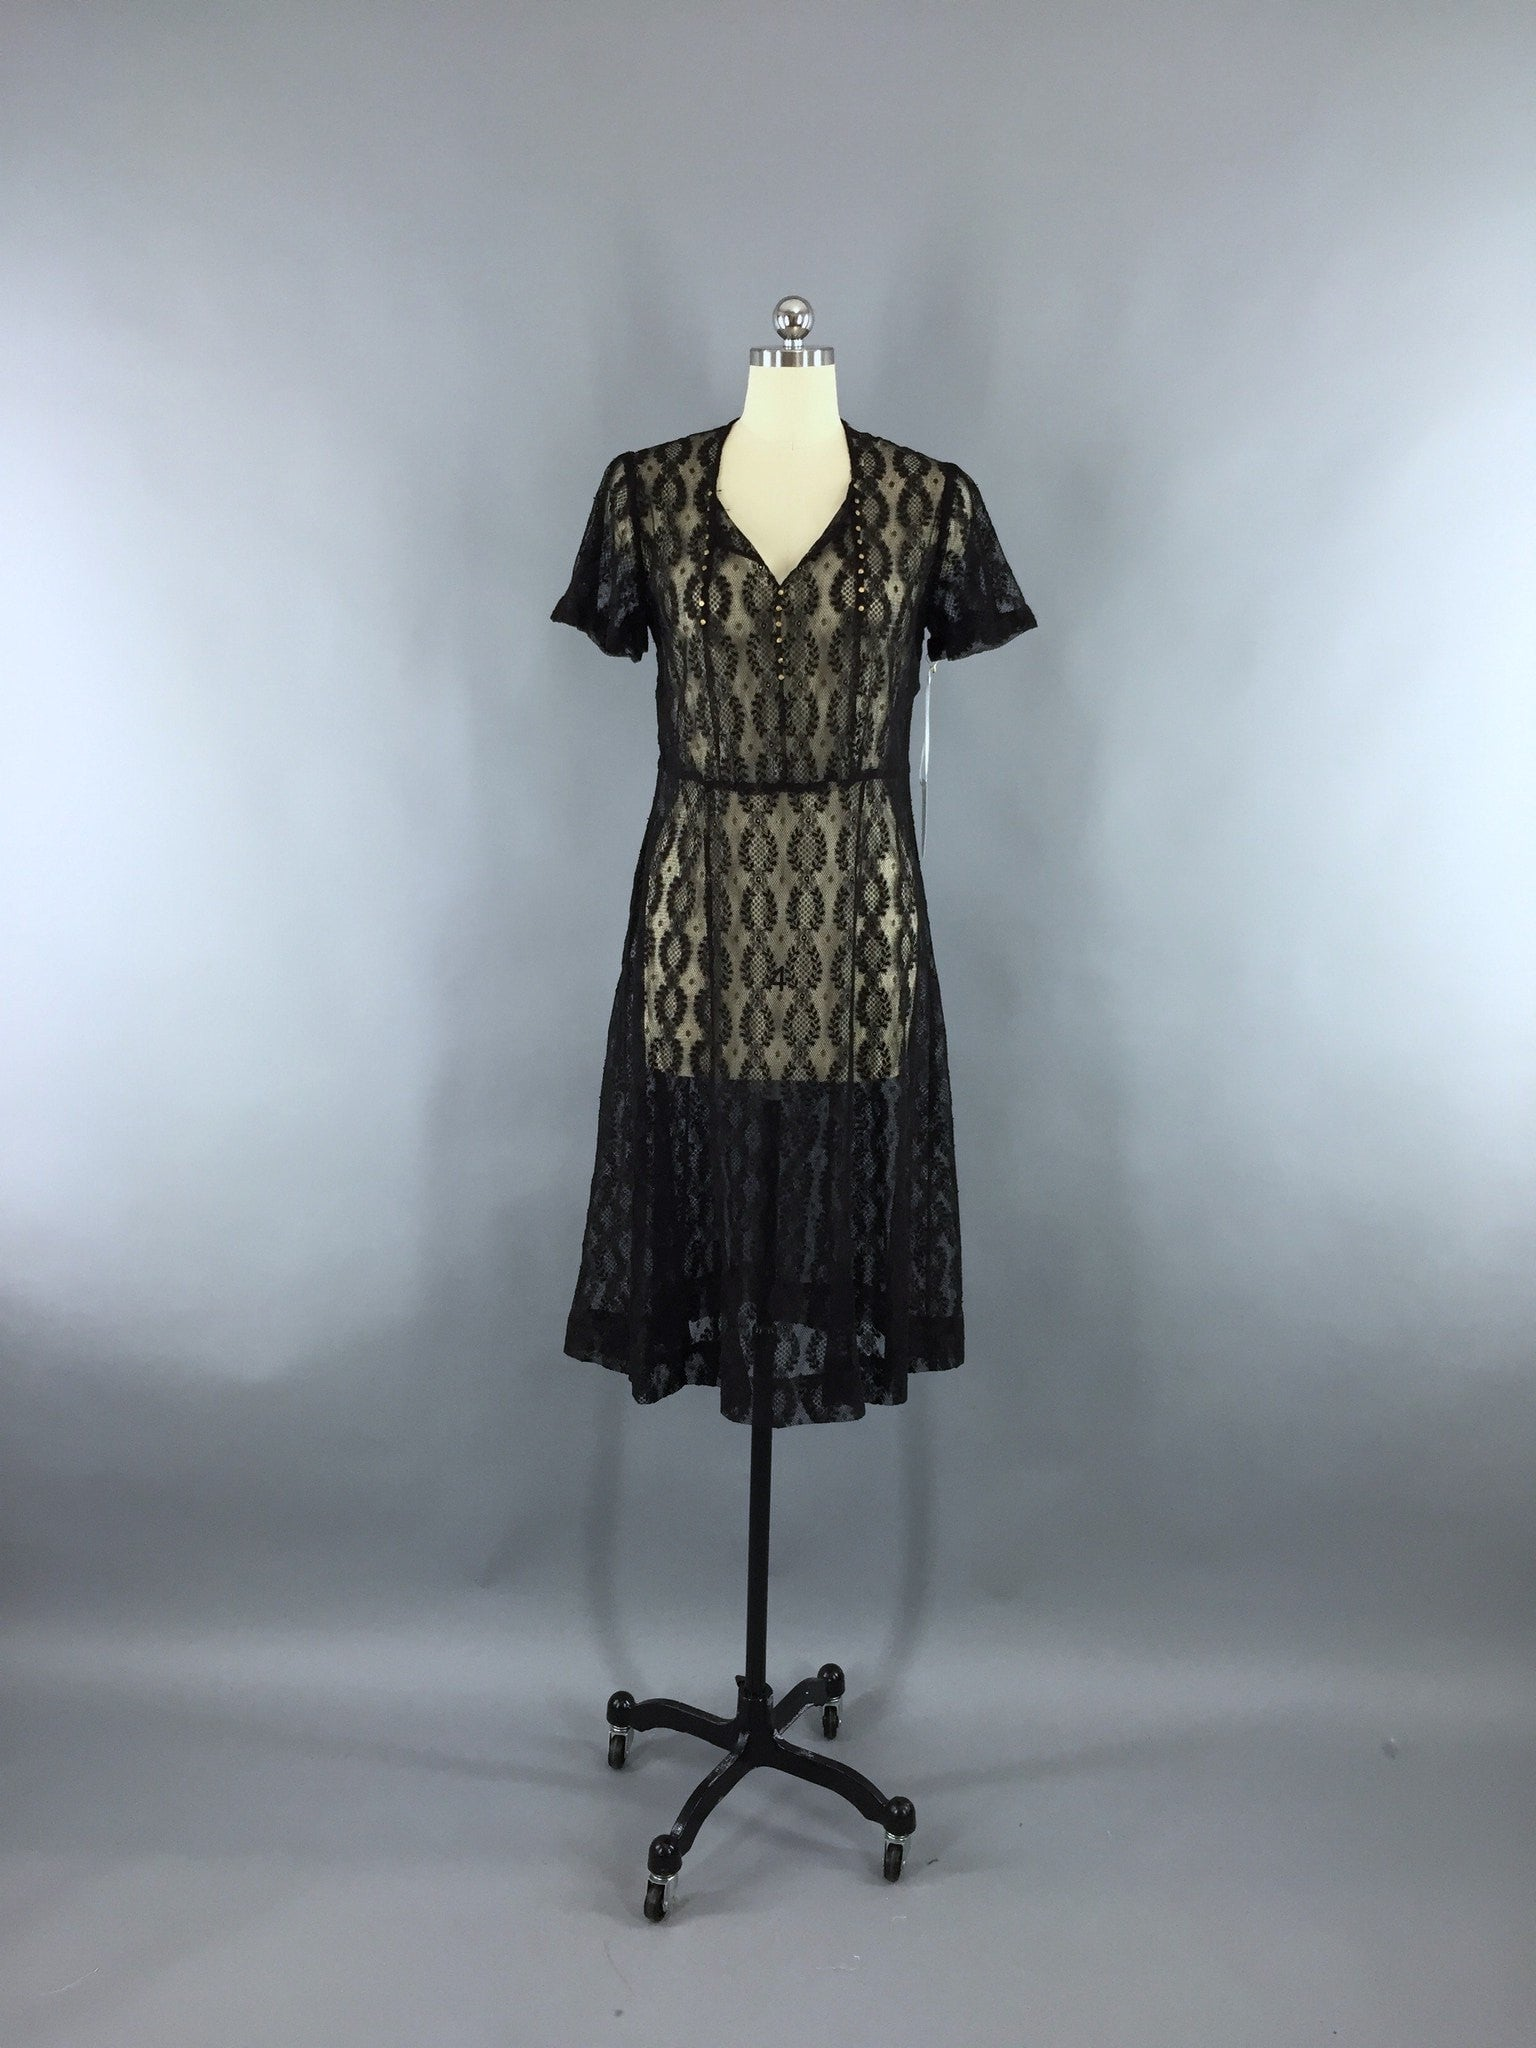 Vintage 1930s Bias Cut Black Lace Day Dress Dress ThisBlueBird